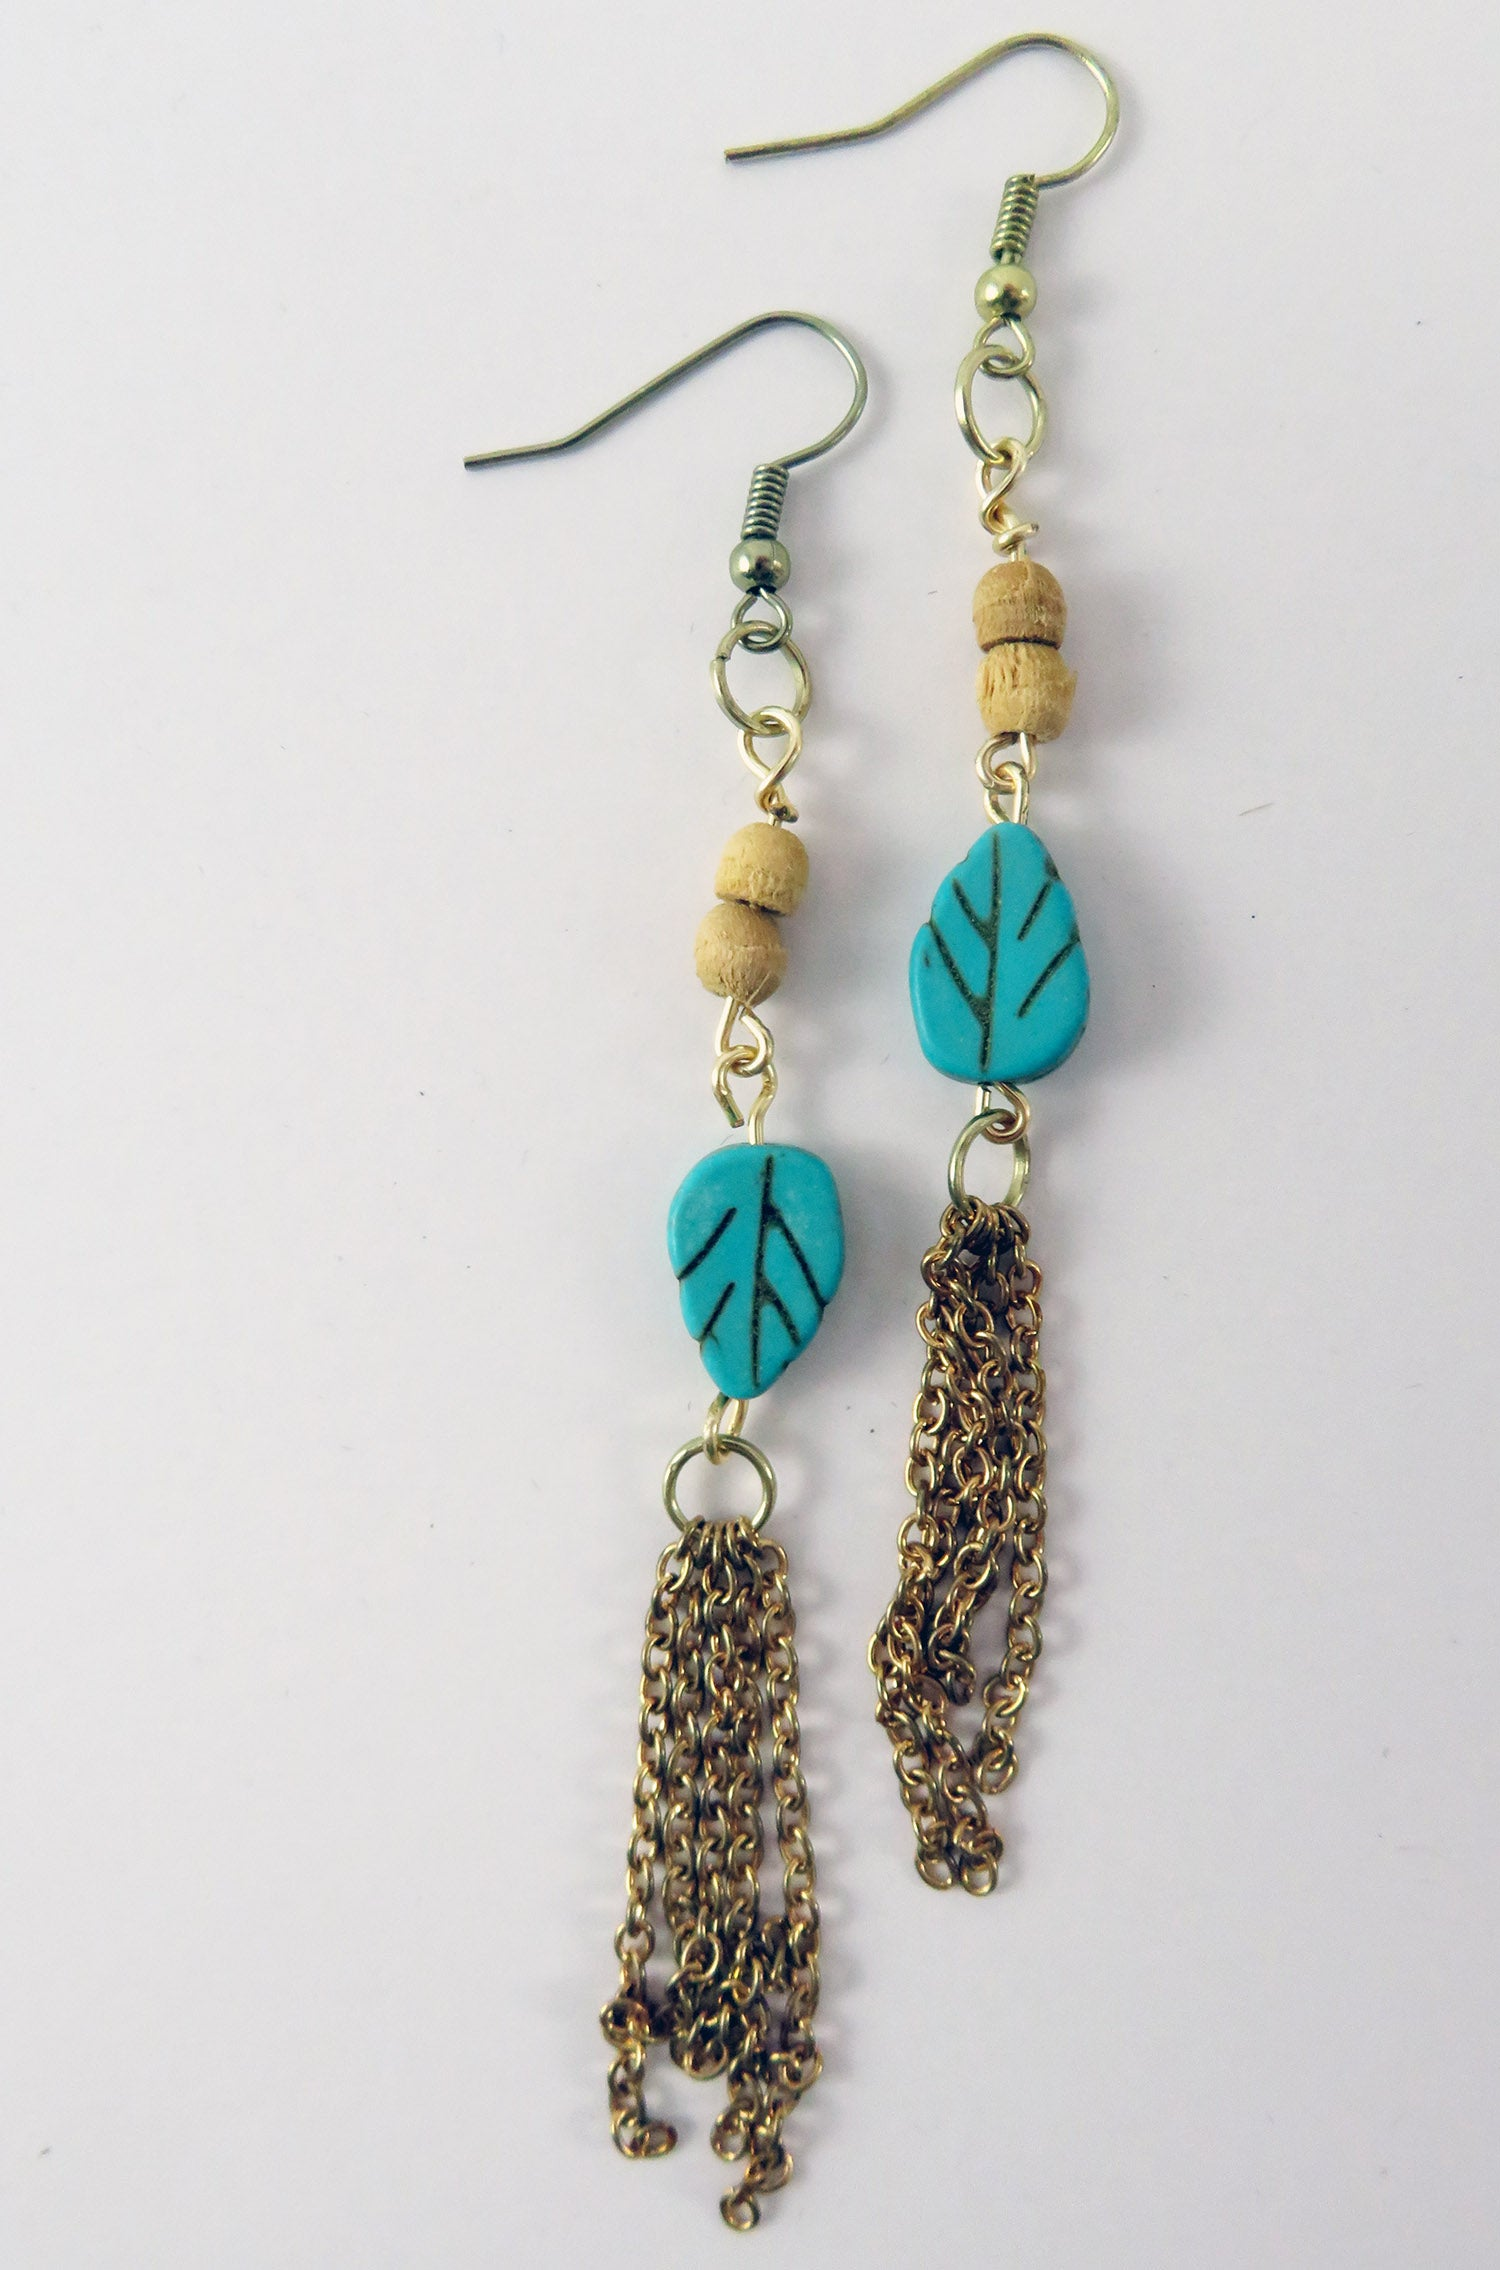 Handmade Jewelry Beaded Earrings Boho Women's Accessories Hammer and Heart Boutique Made in the USA Raleigh North Carolina Gifts for Her